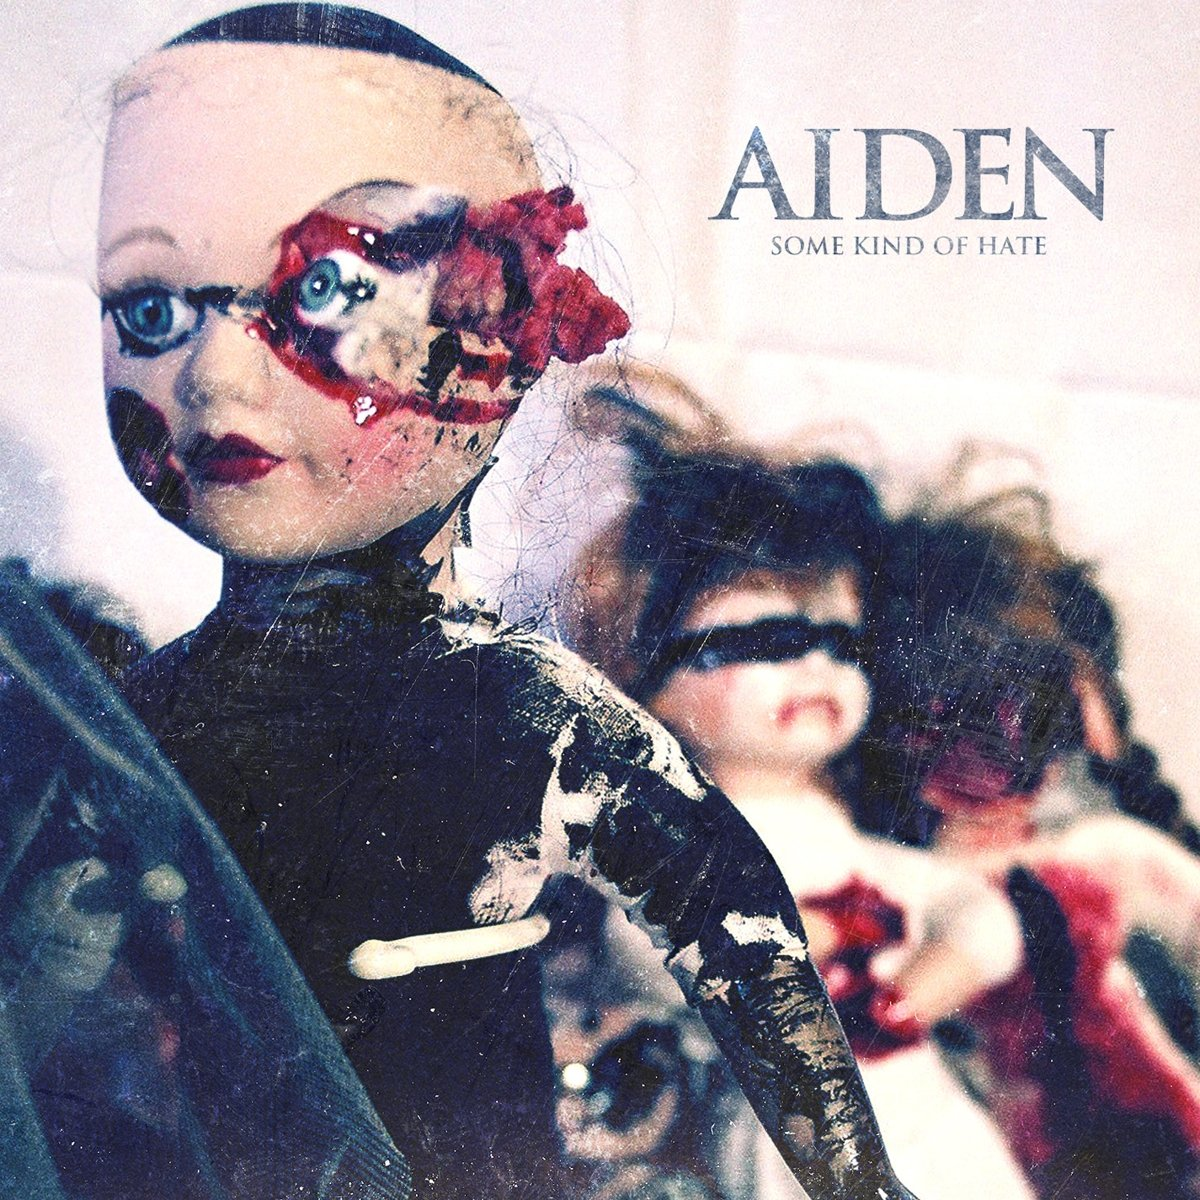 Aiden - Some Kind Of Hate - Amazon.com Music